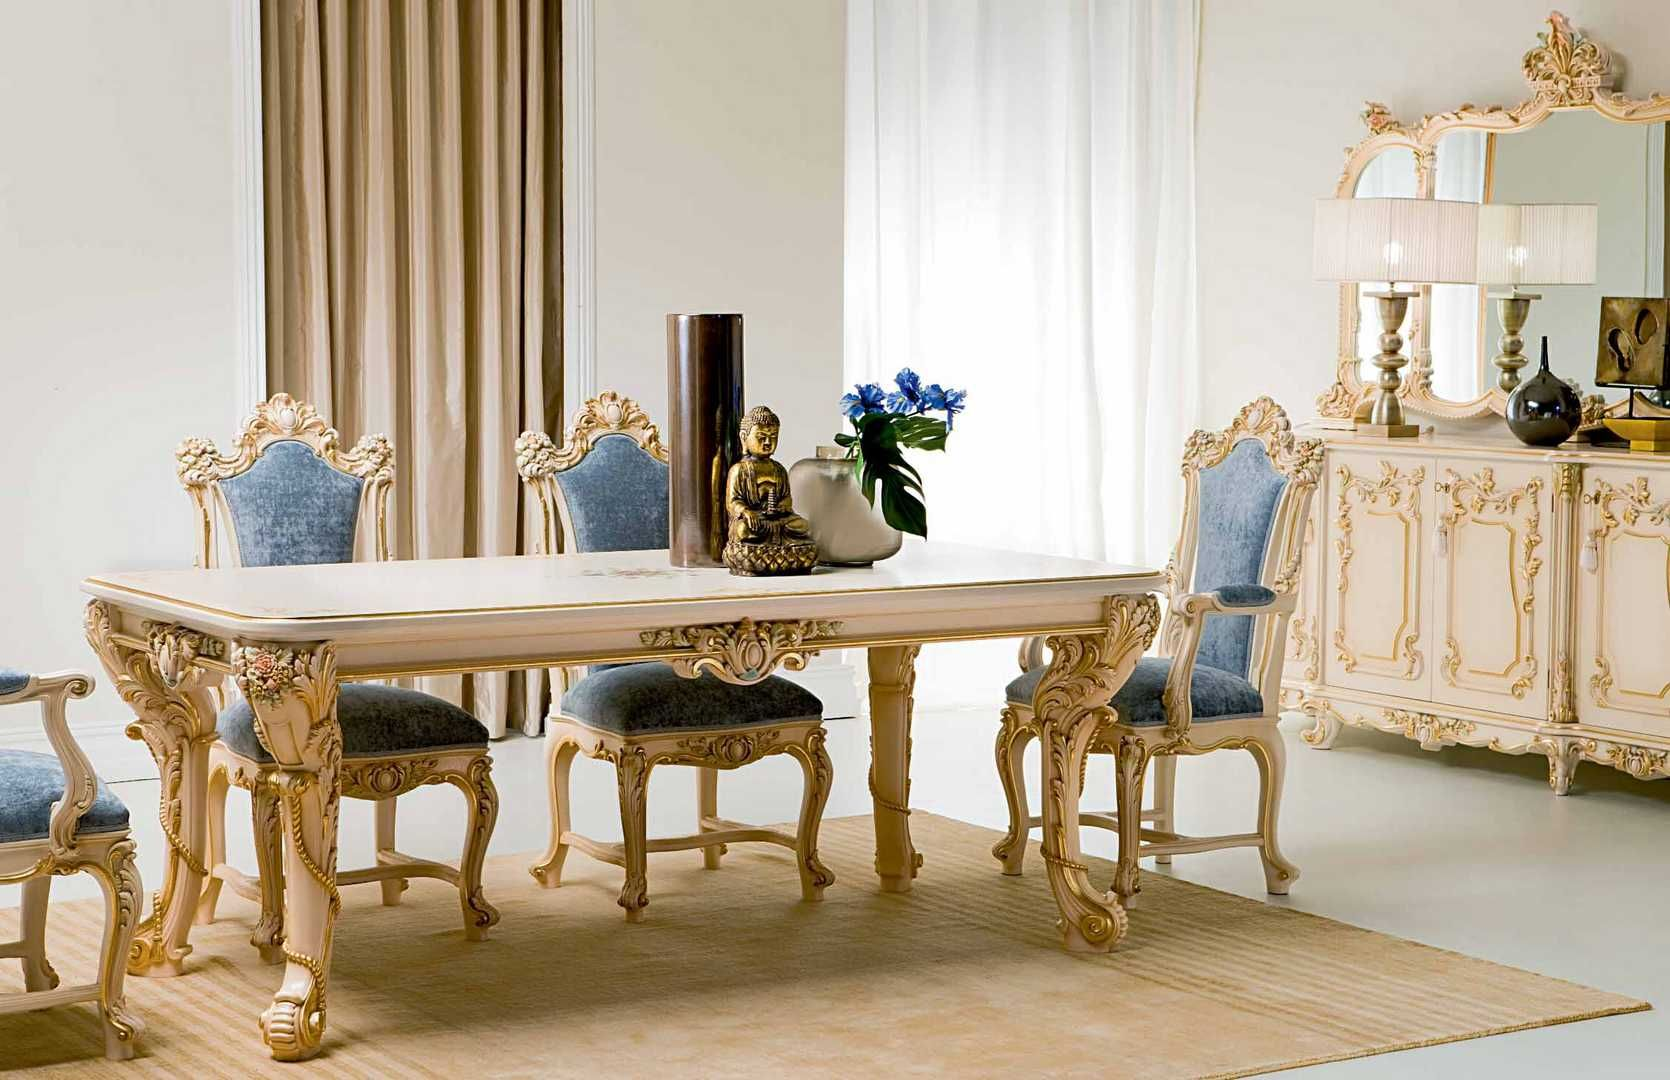 Christian Gianelli Image What A Beautiful Composition And Use Of Gorgeous Italian Dining Room Decor Review